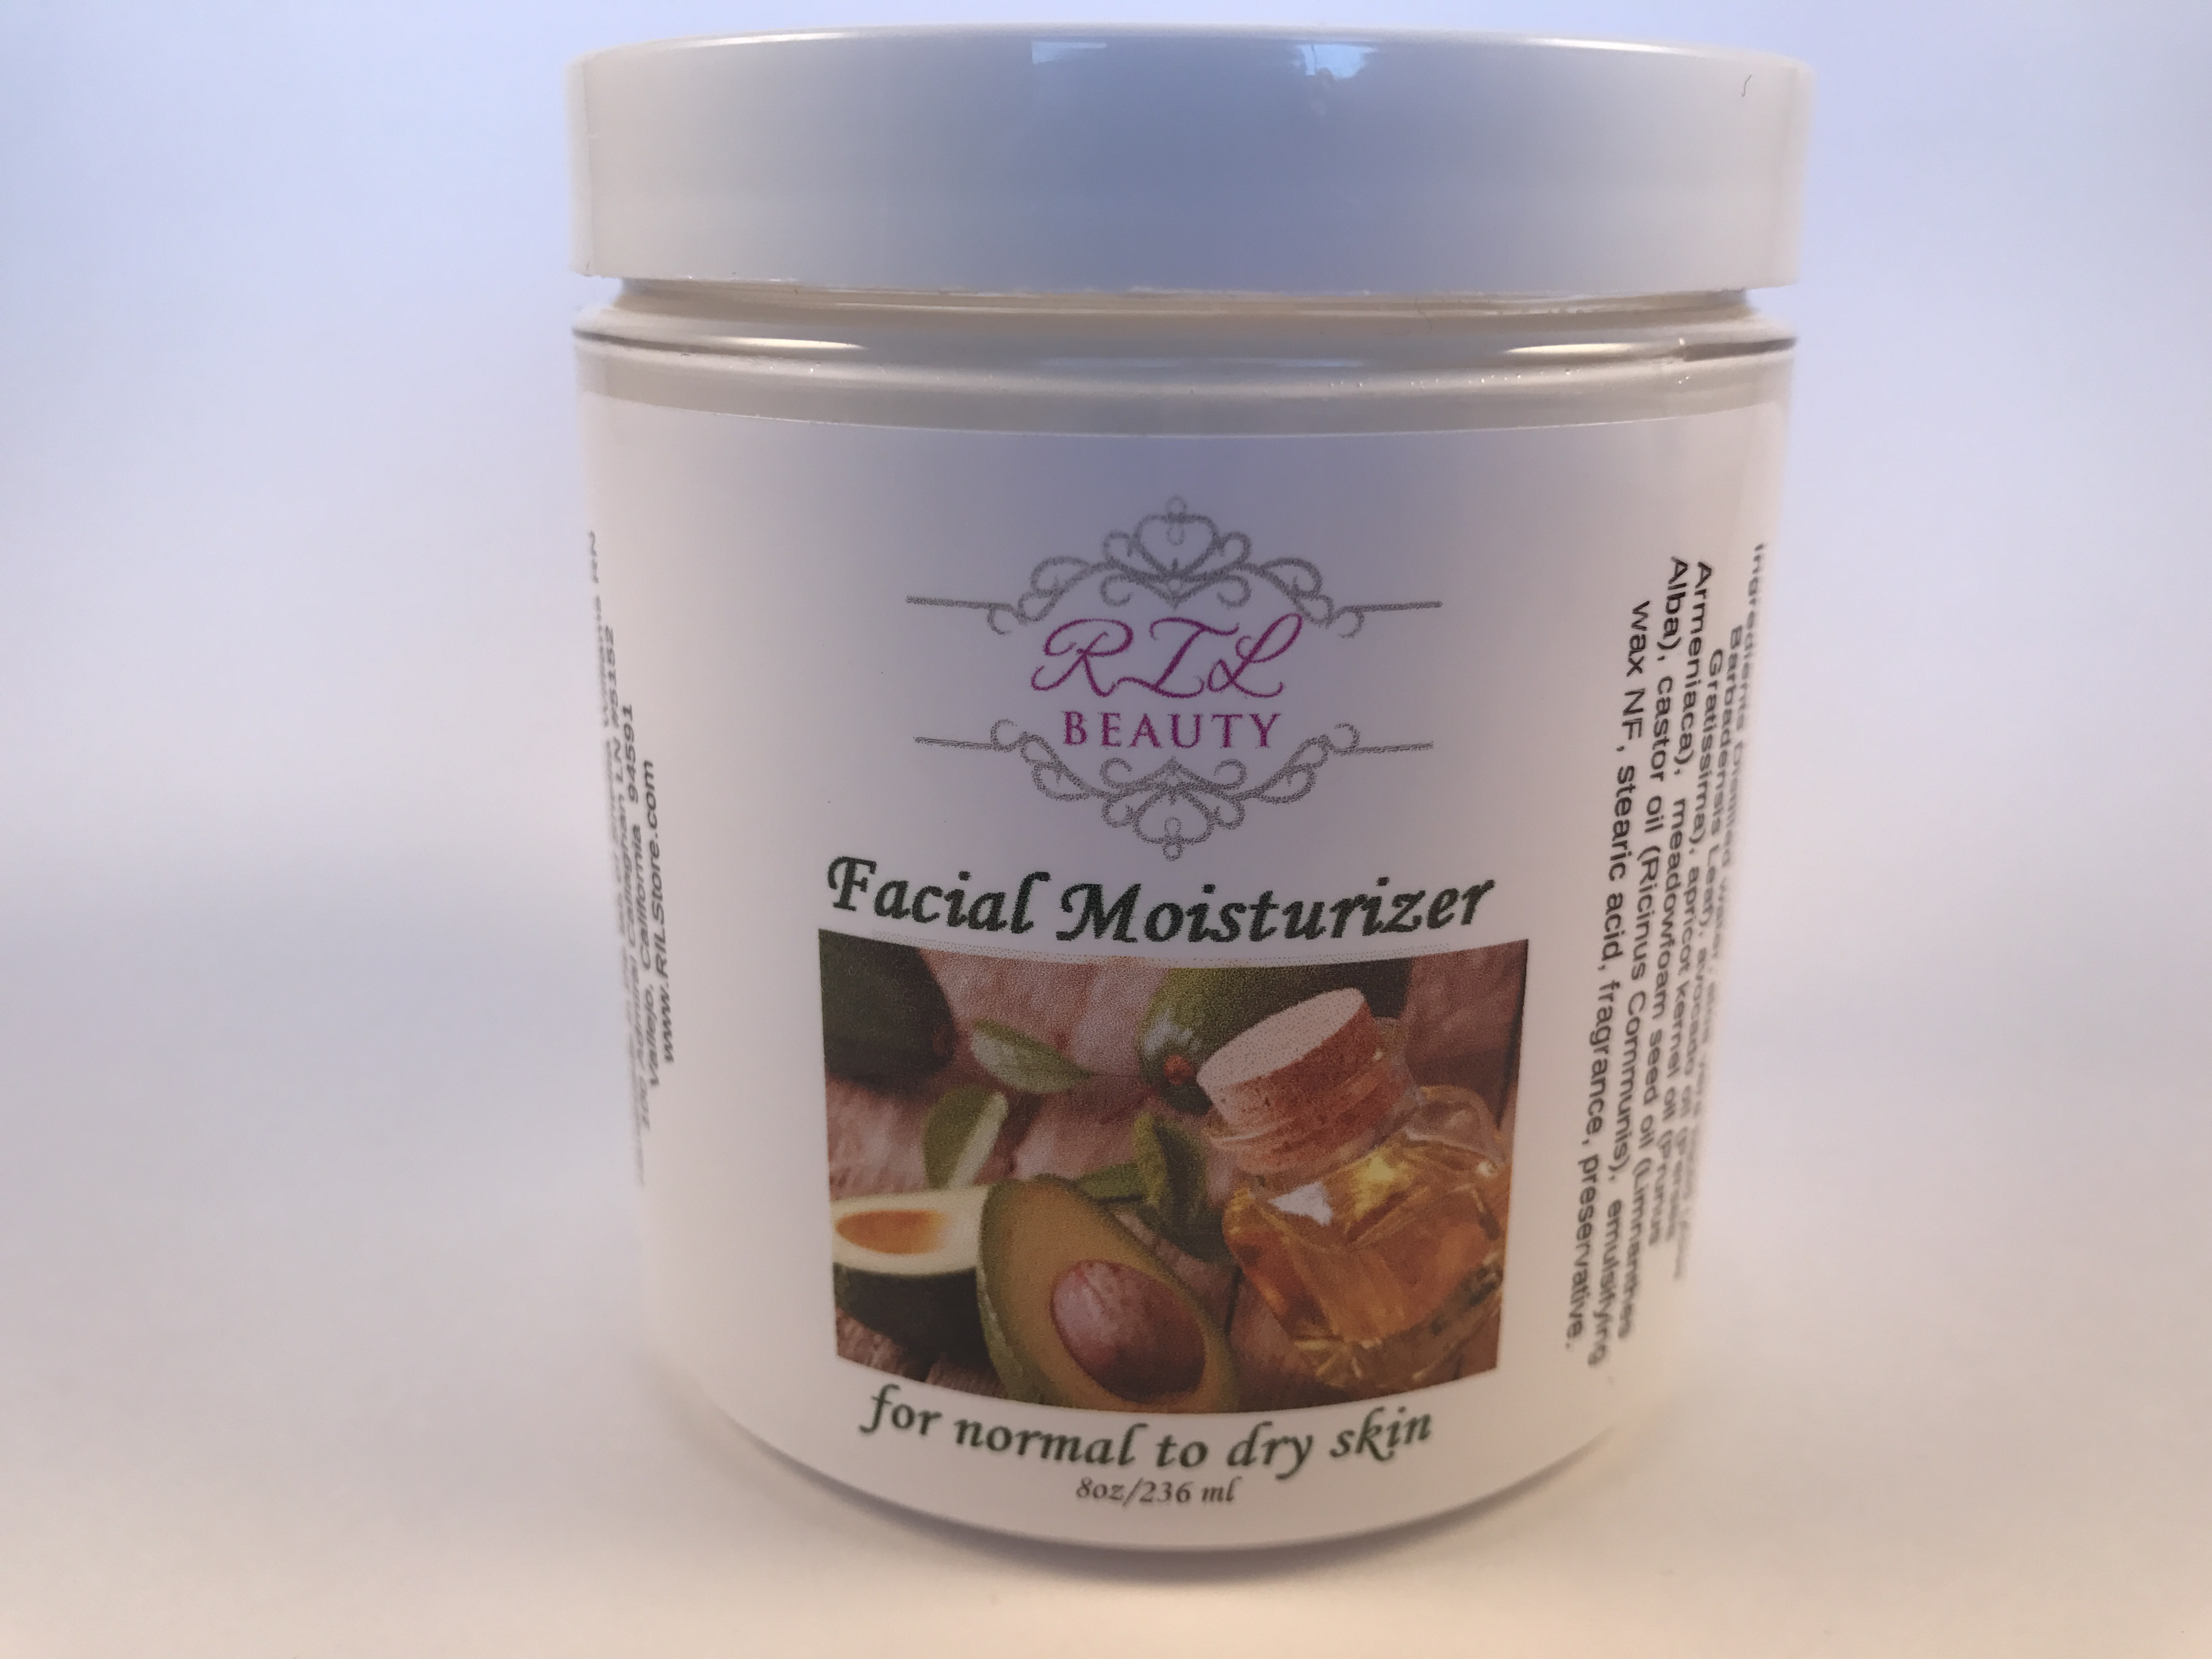 Facial Moisturizer (Normal to Dry skin) 8 oz.